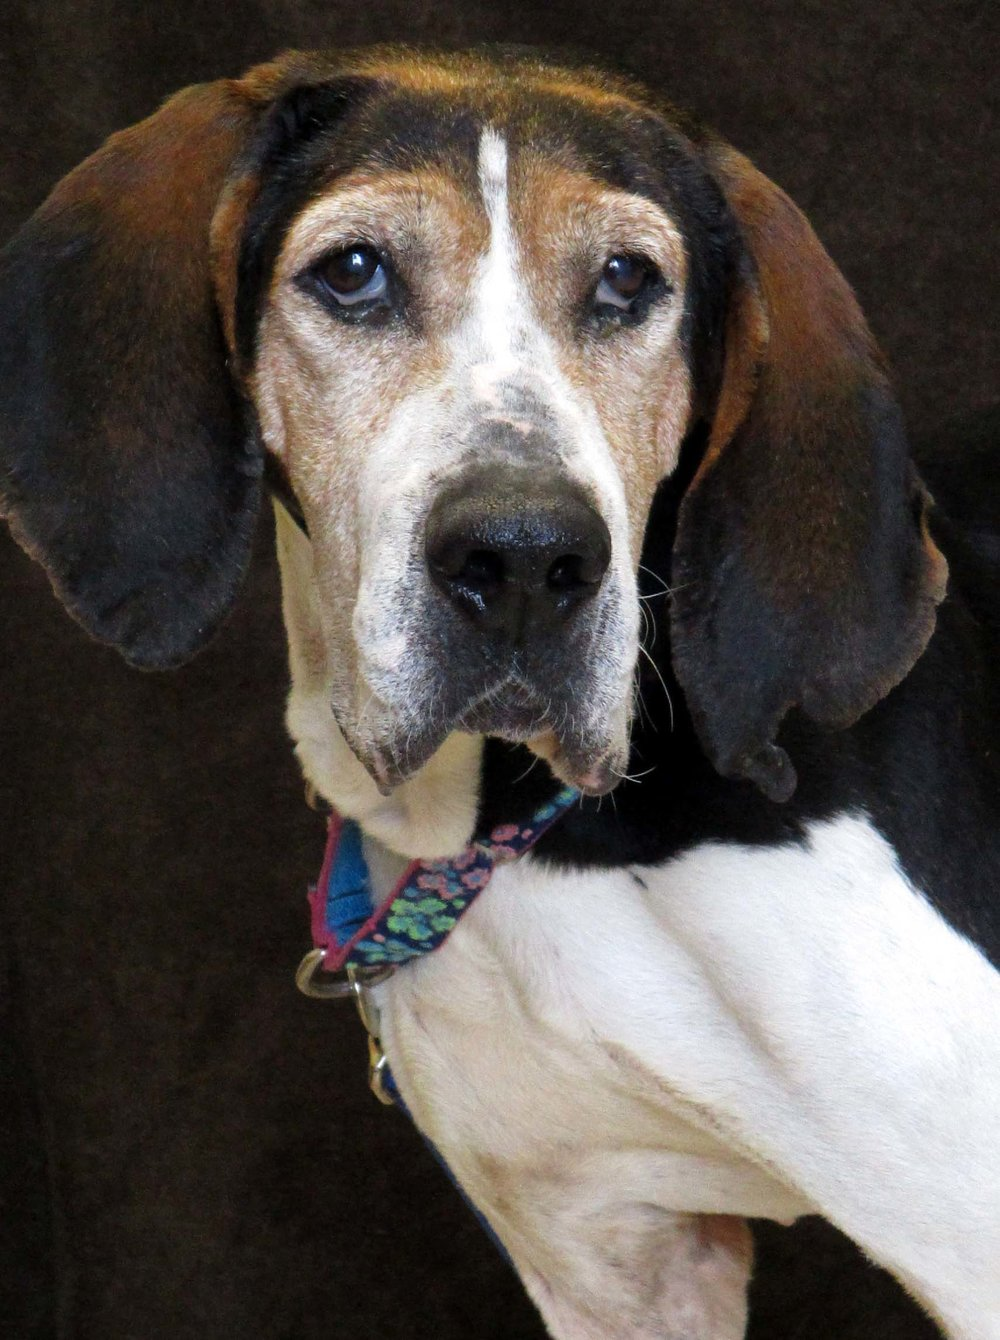 Gin is a 3 year old Coonhound. HAWS is recommending children 6 and older due to her intensity with food. She would not do well with a cat, but has gotten along with dogs here. If you want a dog that will serenade you with baying Gin is the dog for you!